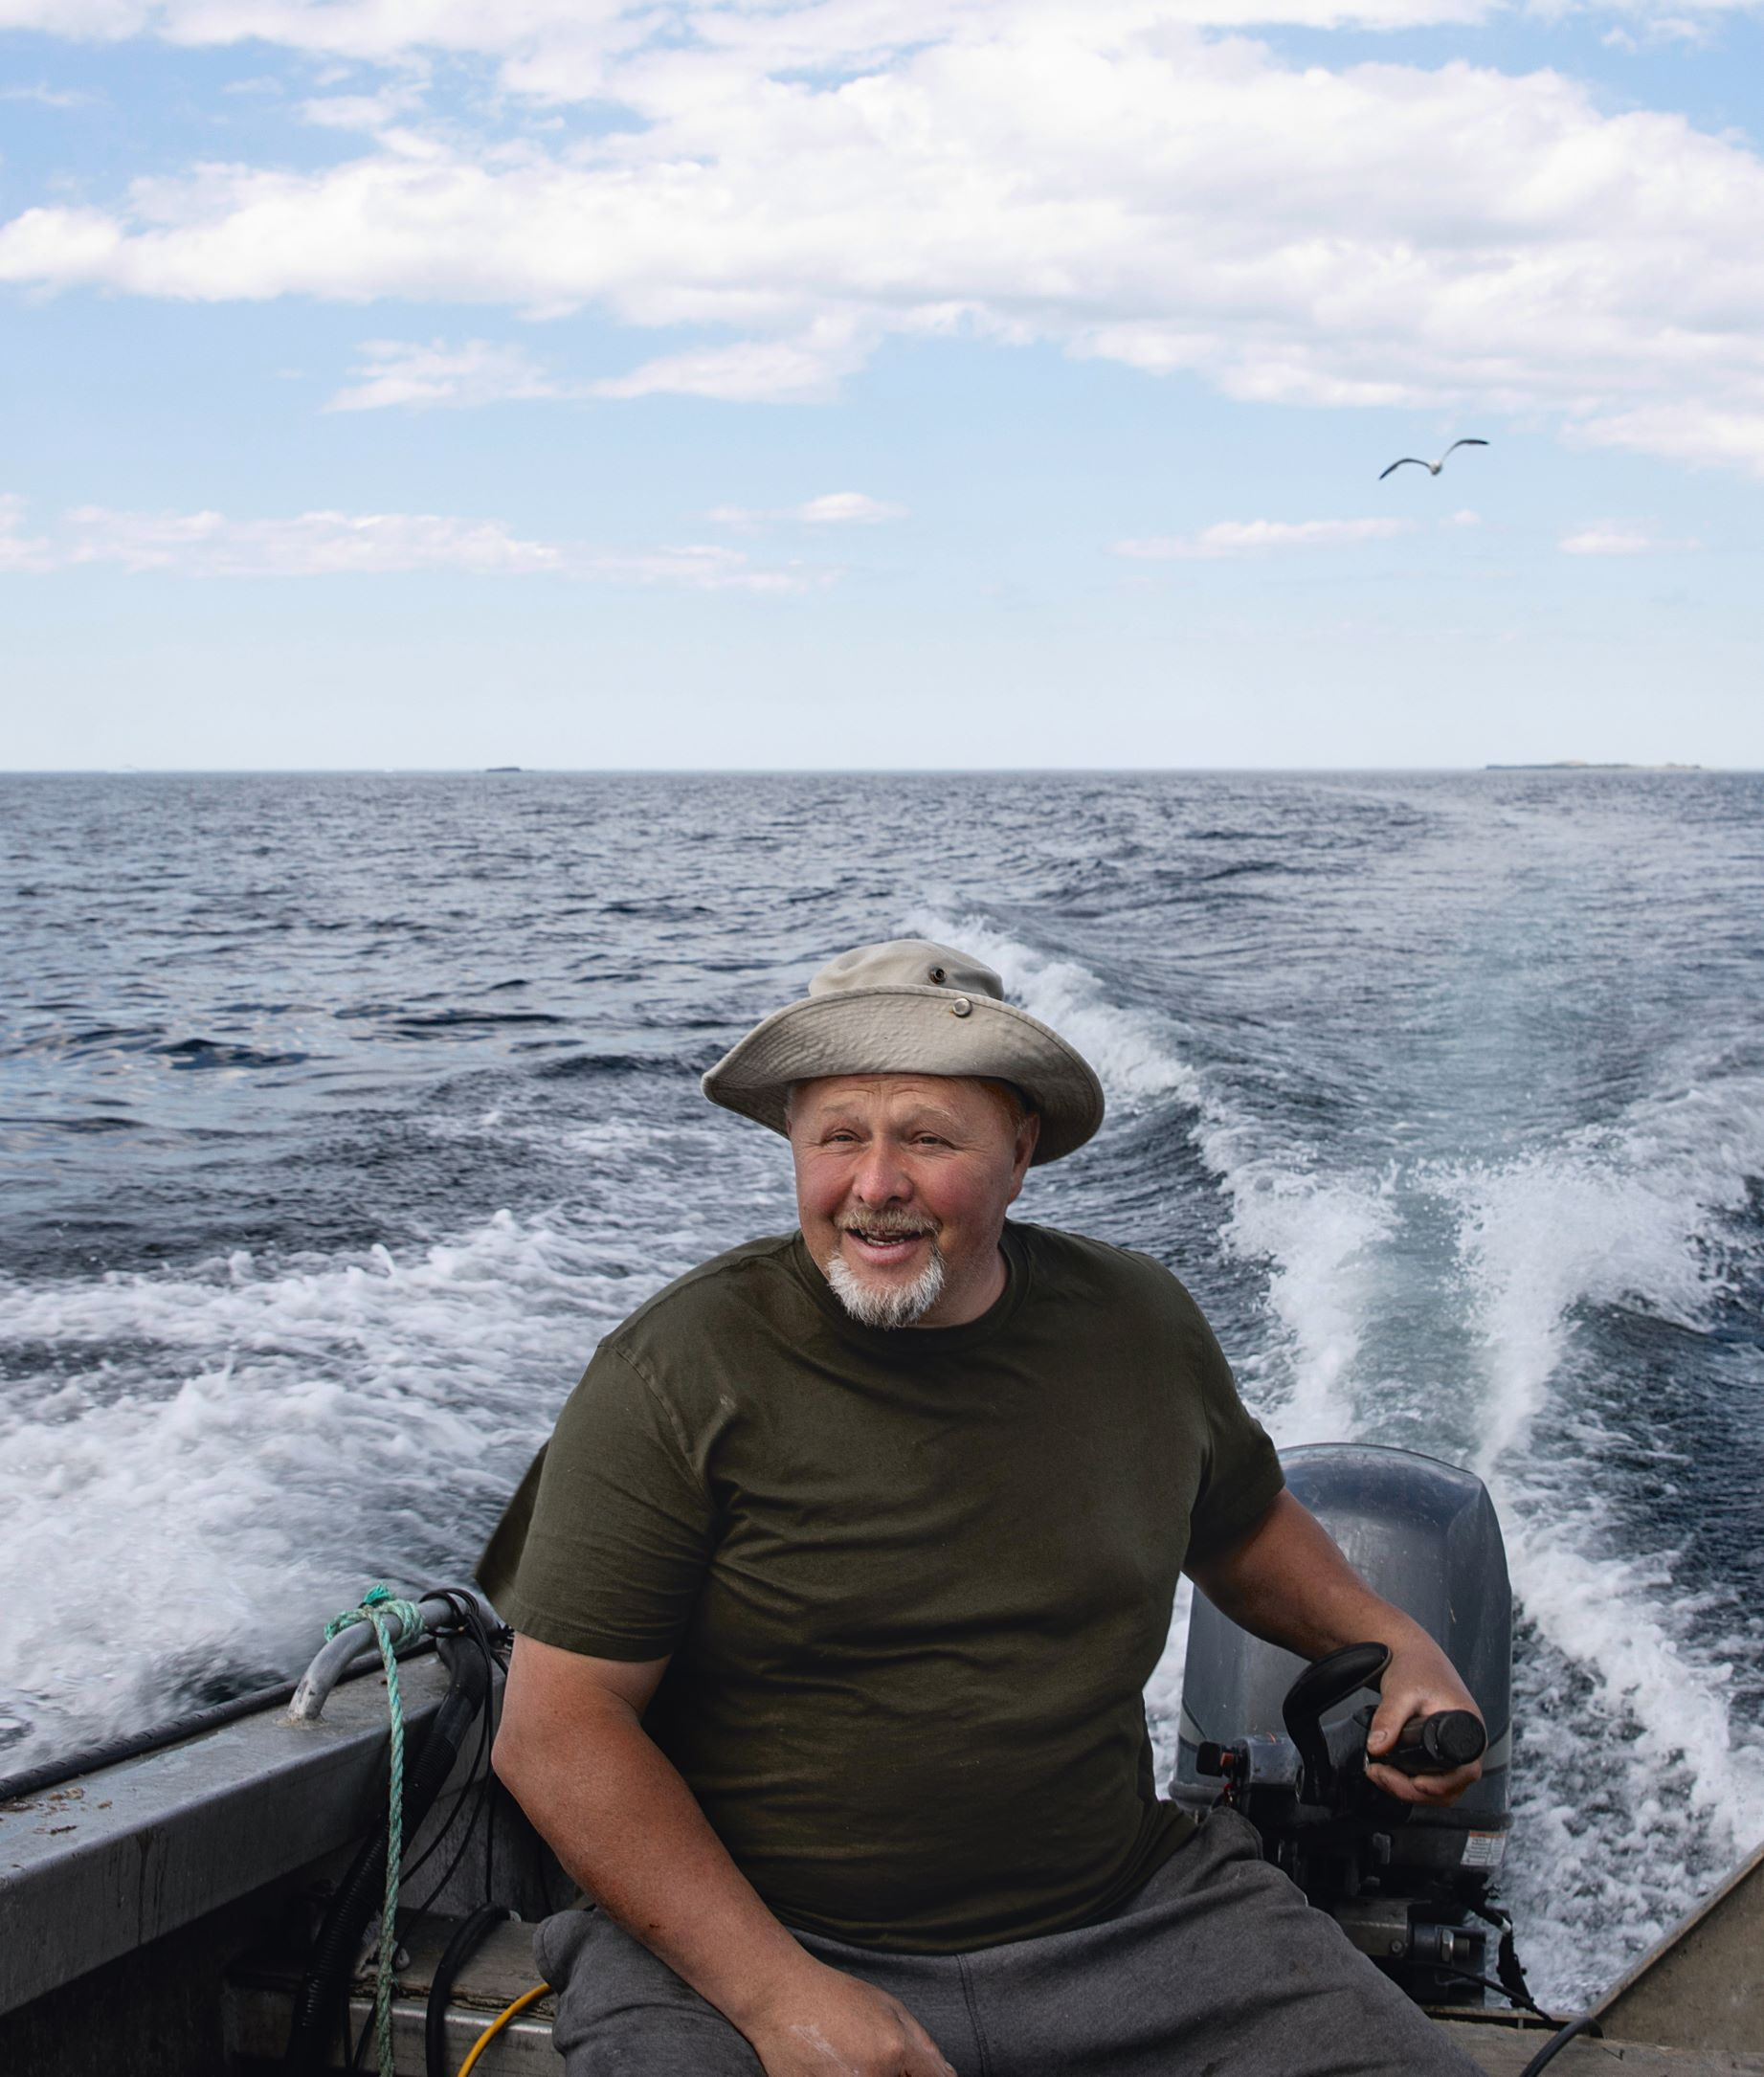 Bayman Jerry Hussey, as featured in Wildness: An Ode to Newfoundland and Labrador by Jeremy Charles